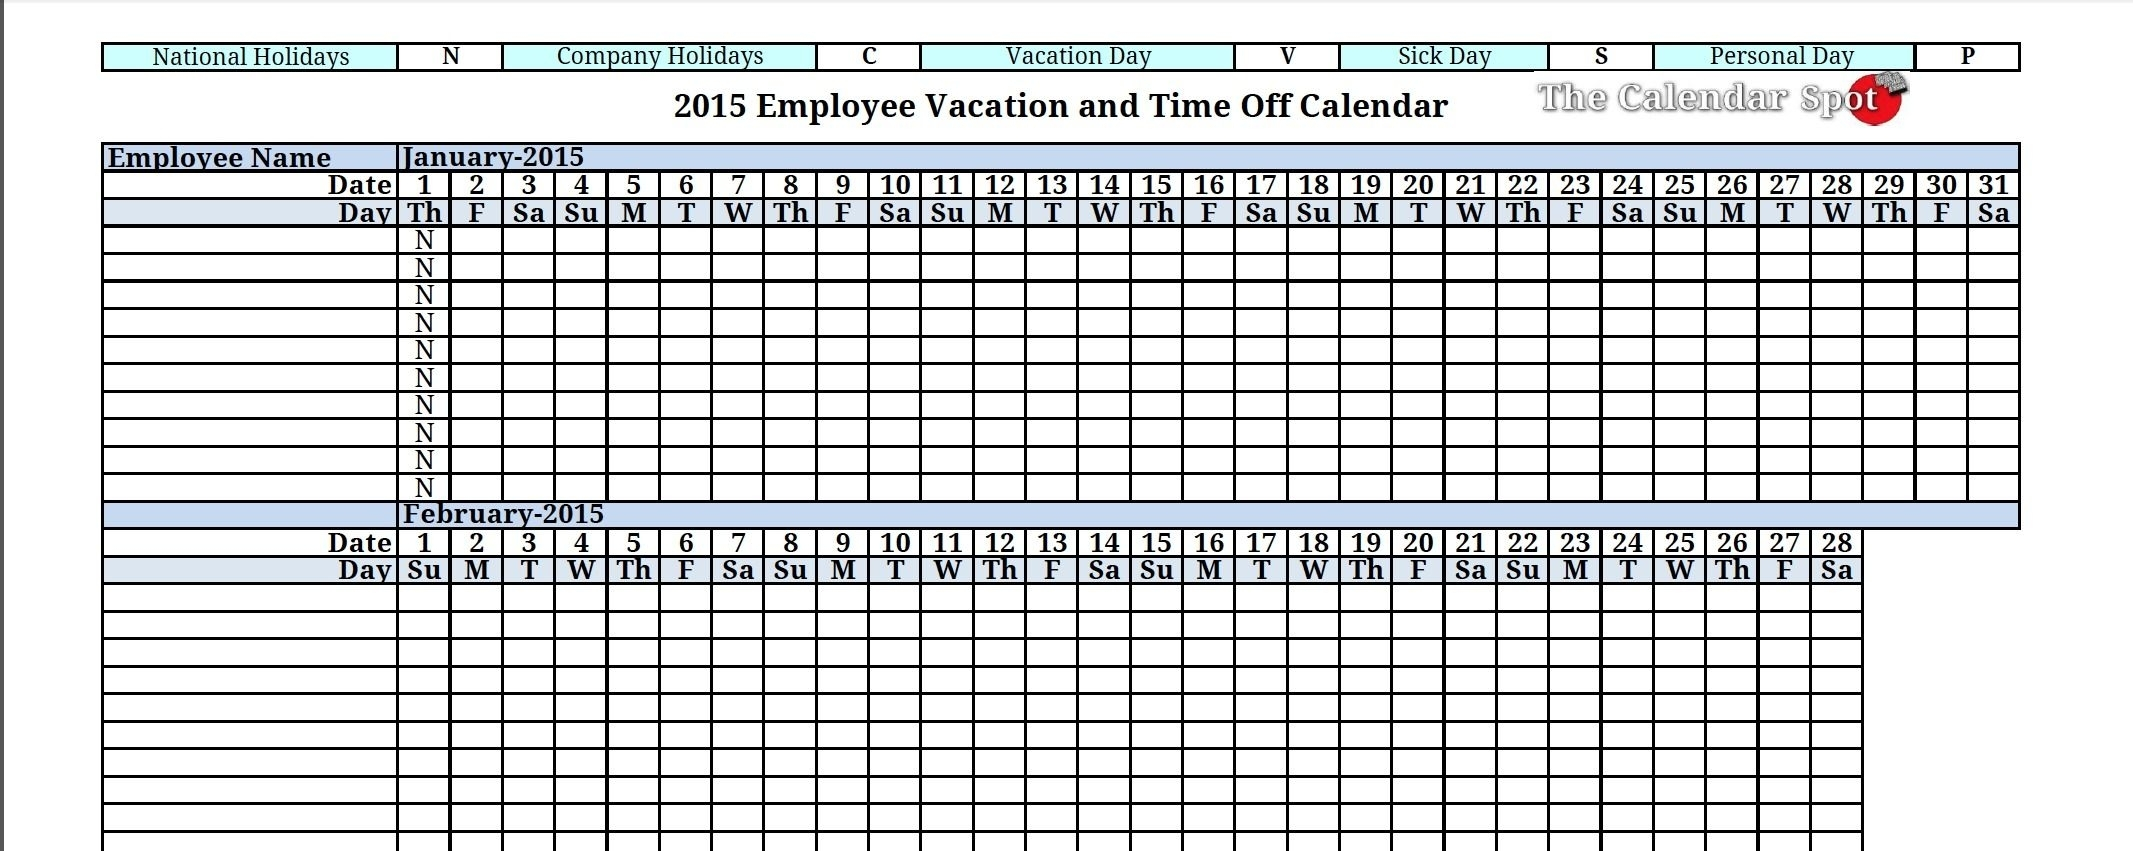 2015 Employee Vacation Tracking Calendar Download | The